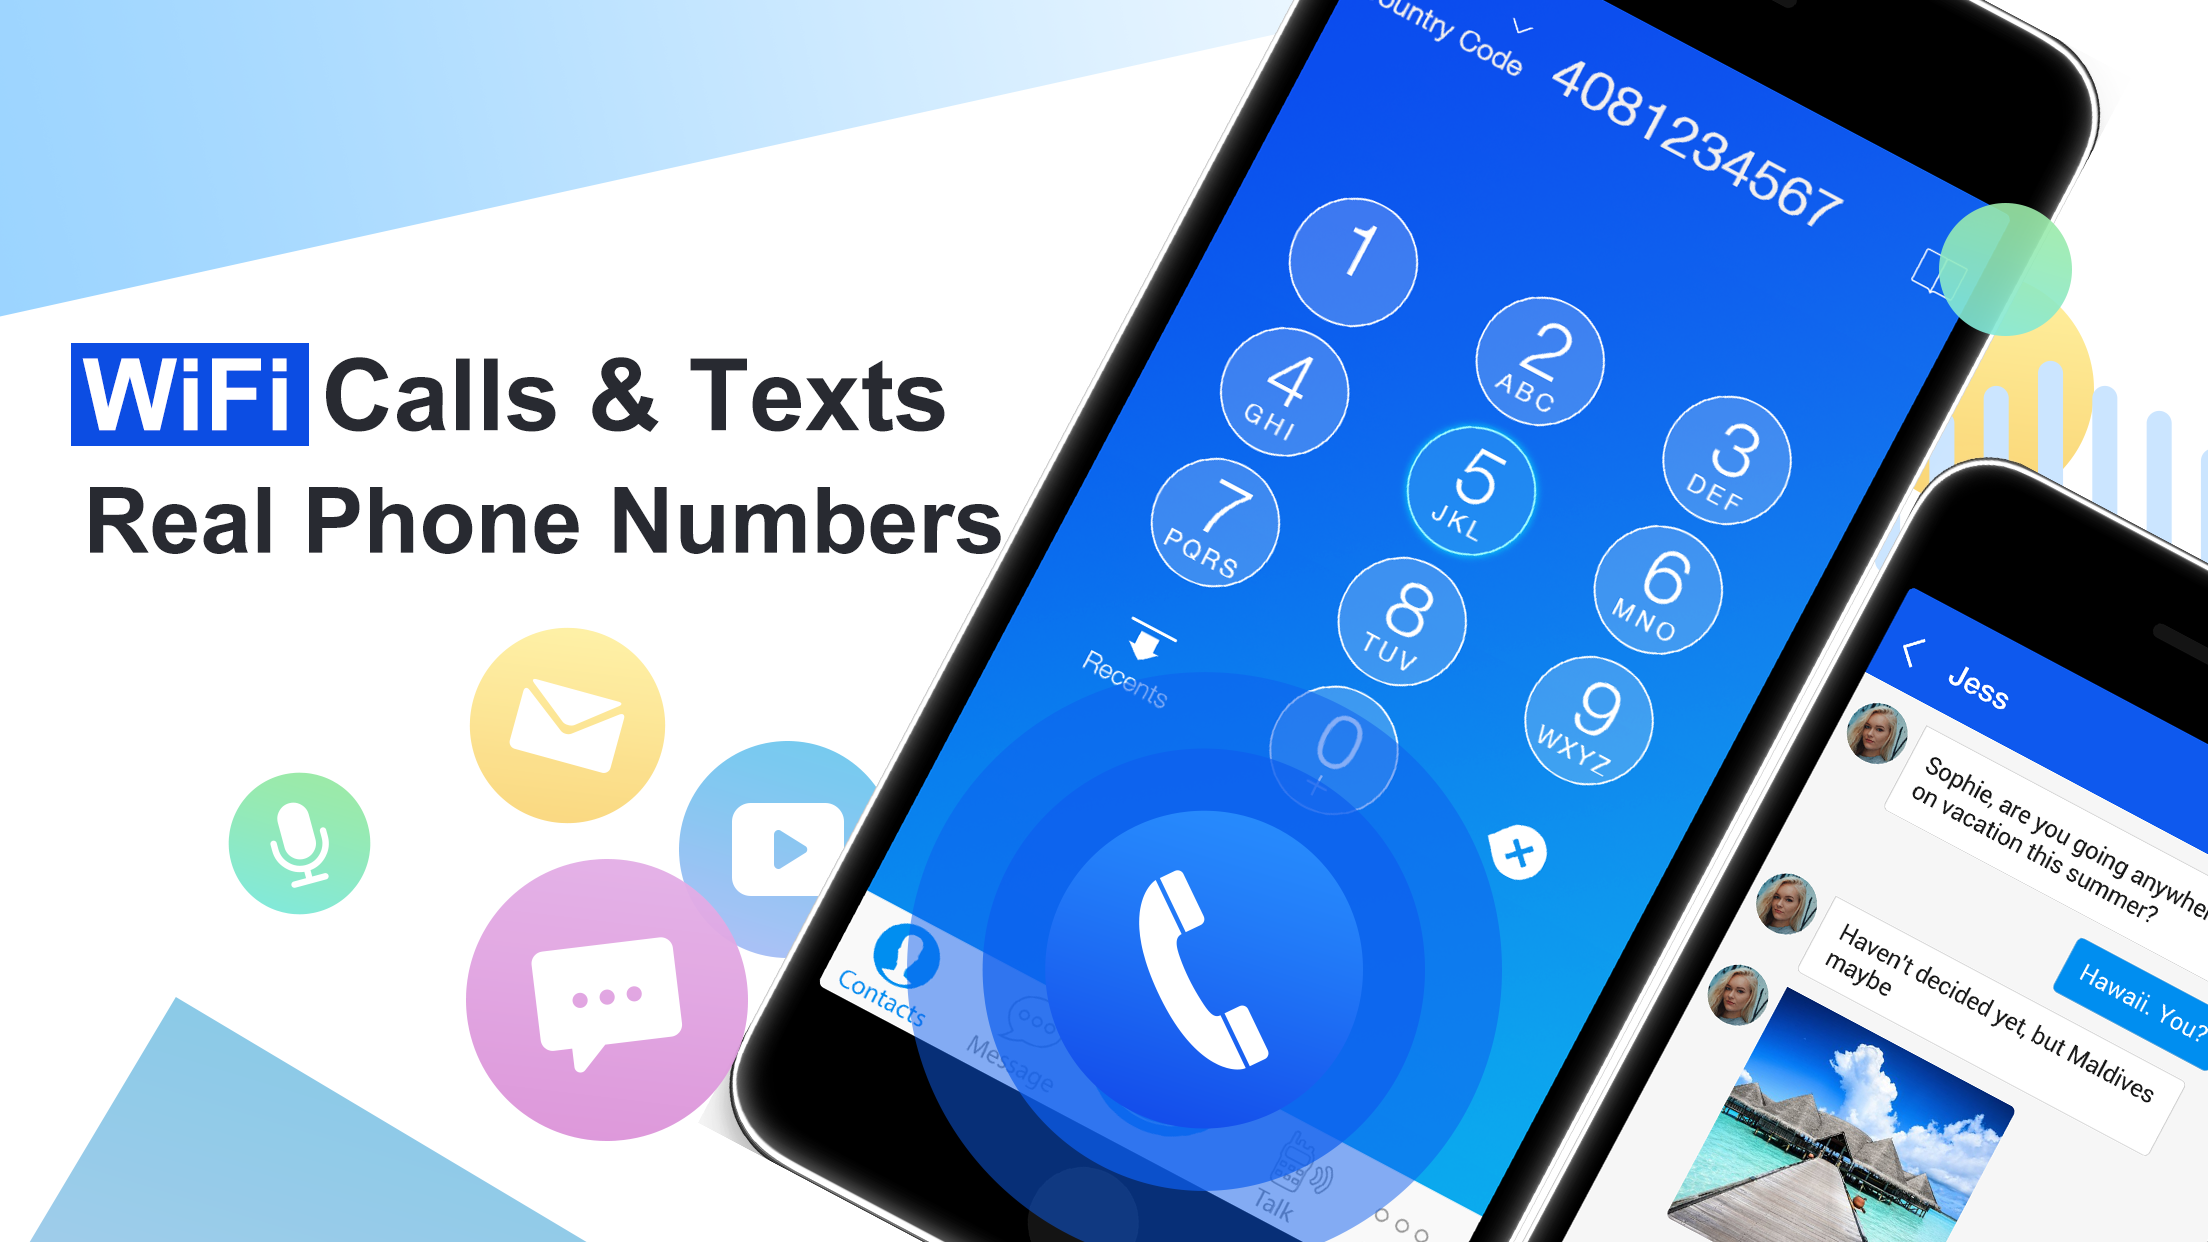 There are millions of phone numbers from different